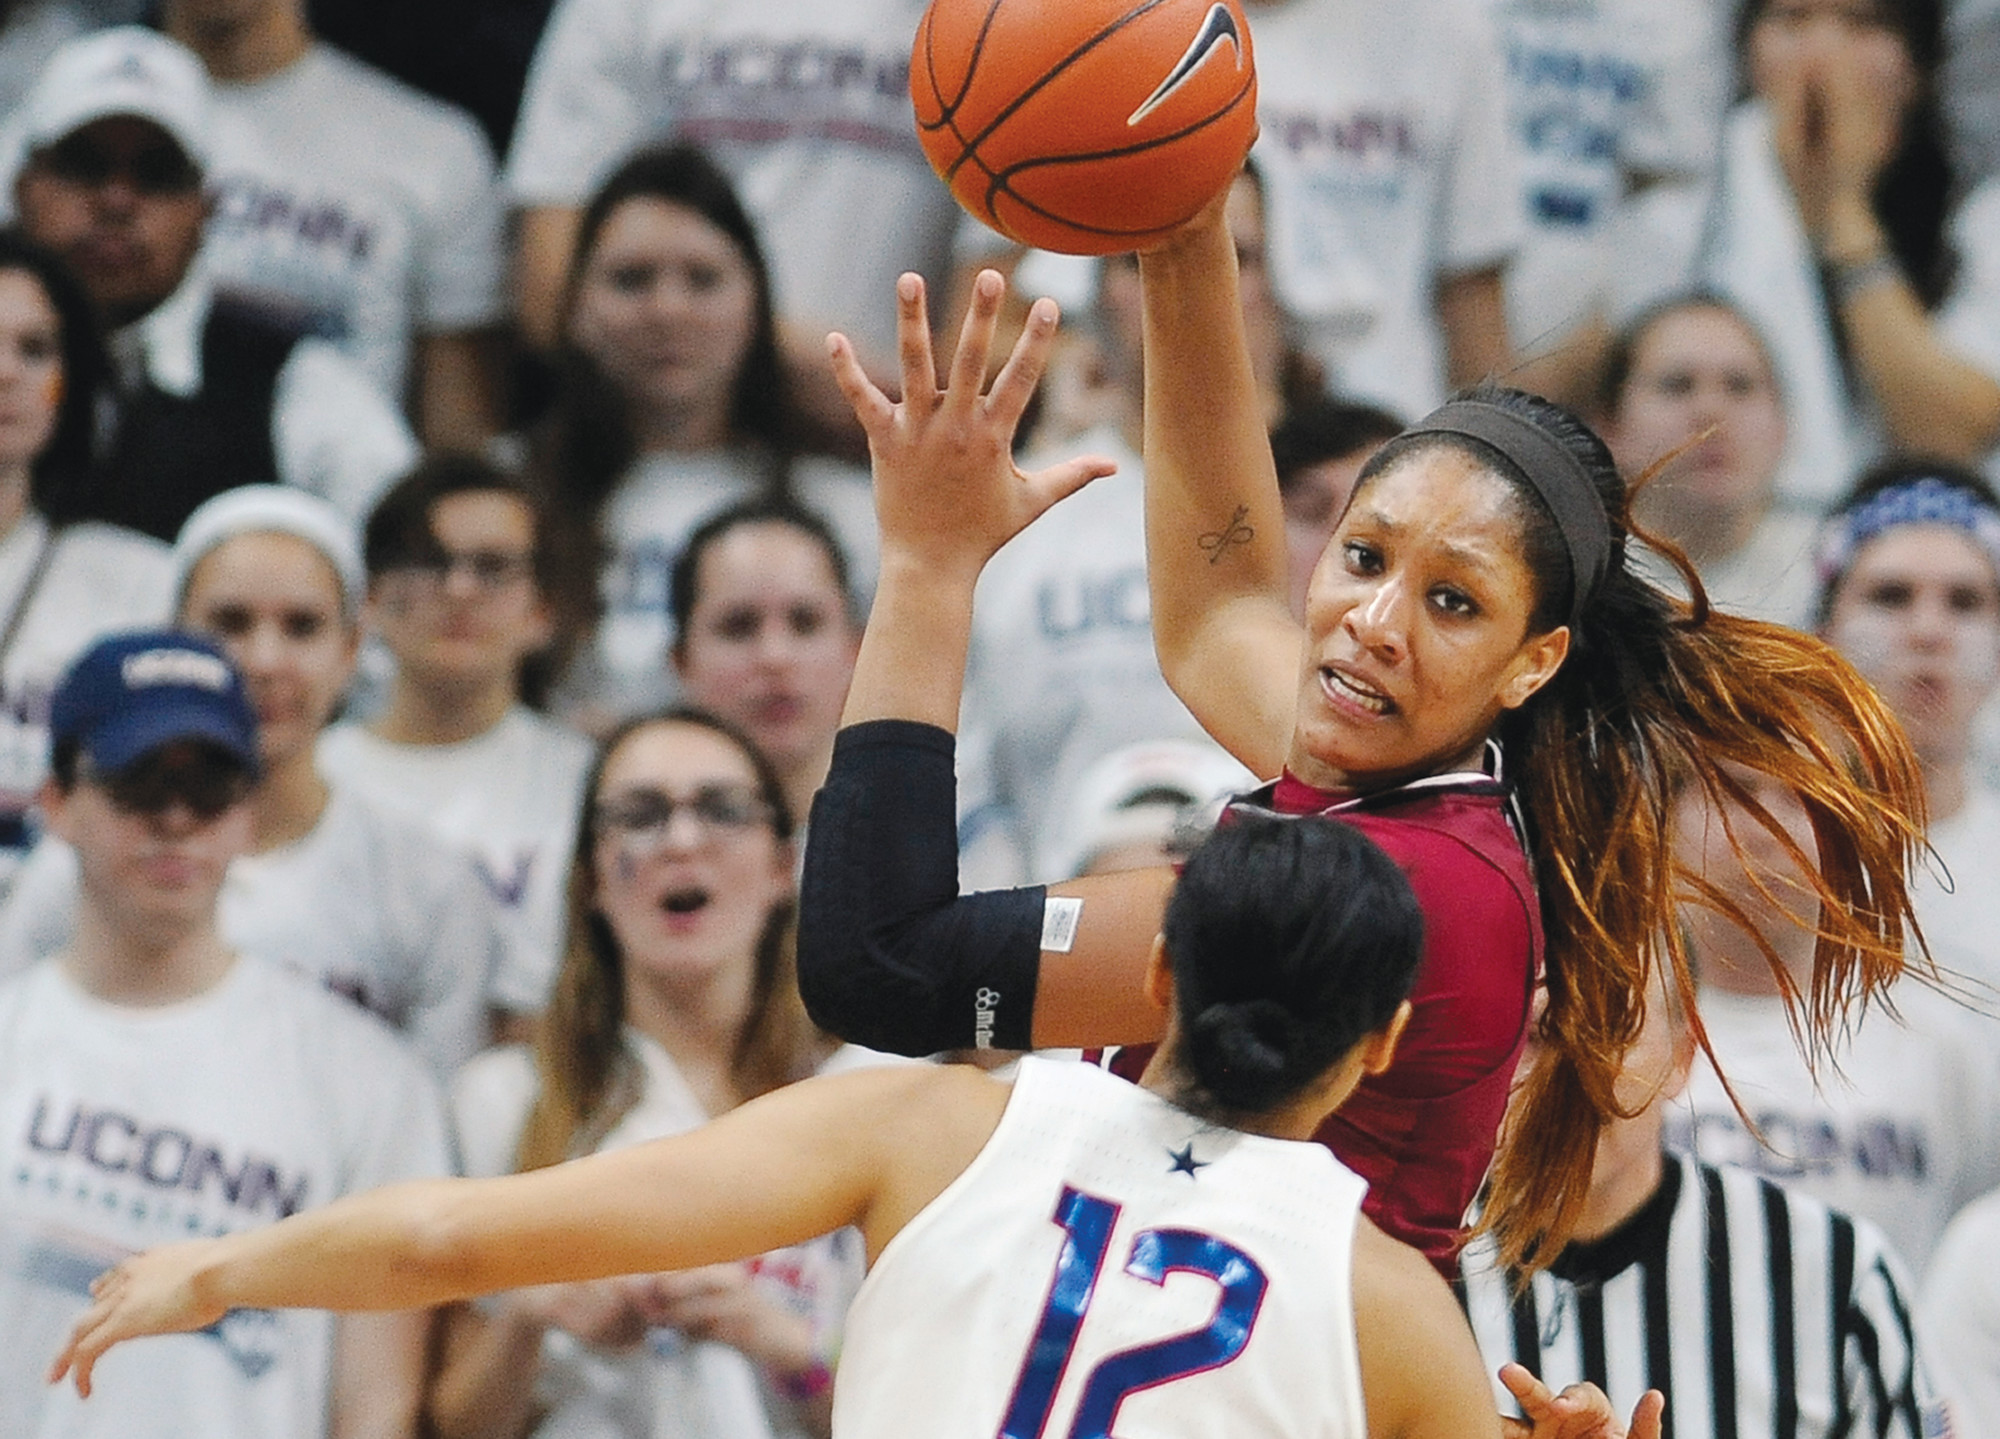 South Carolina's A'ja Wilson top is chronicling her path from the end of her college career to the start of her WNBA career including getting drafted. AP FILE